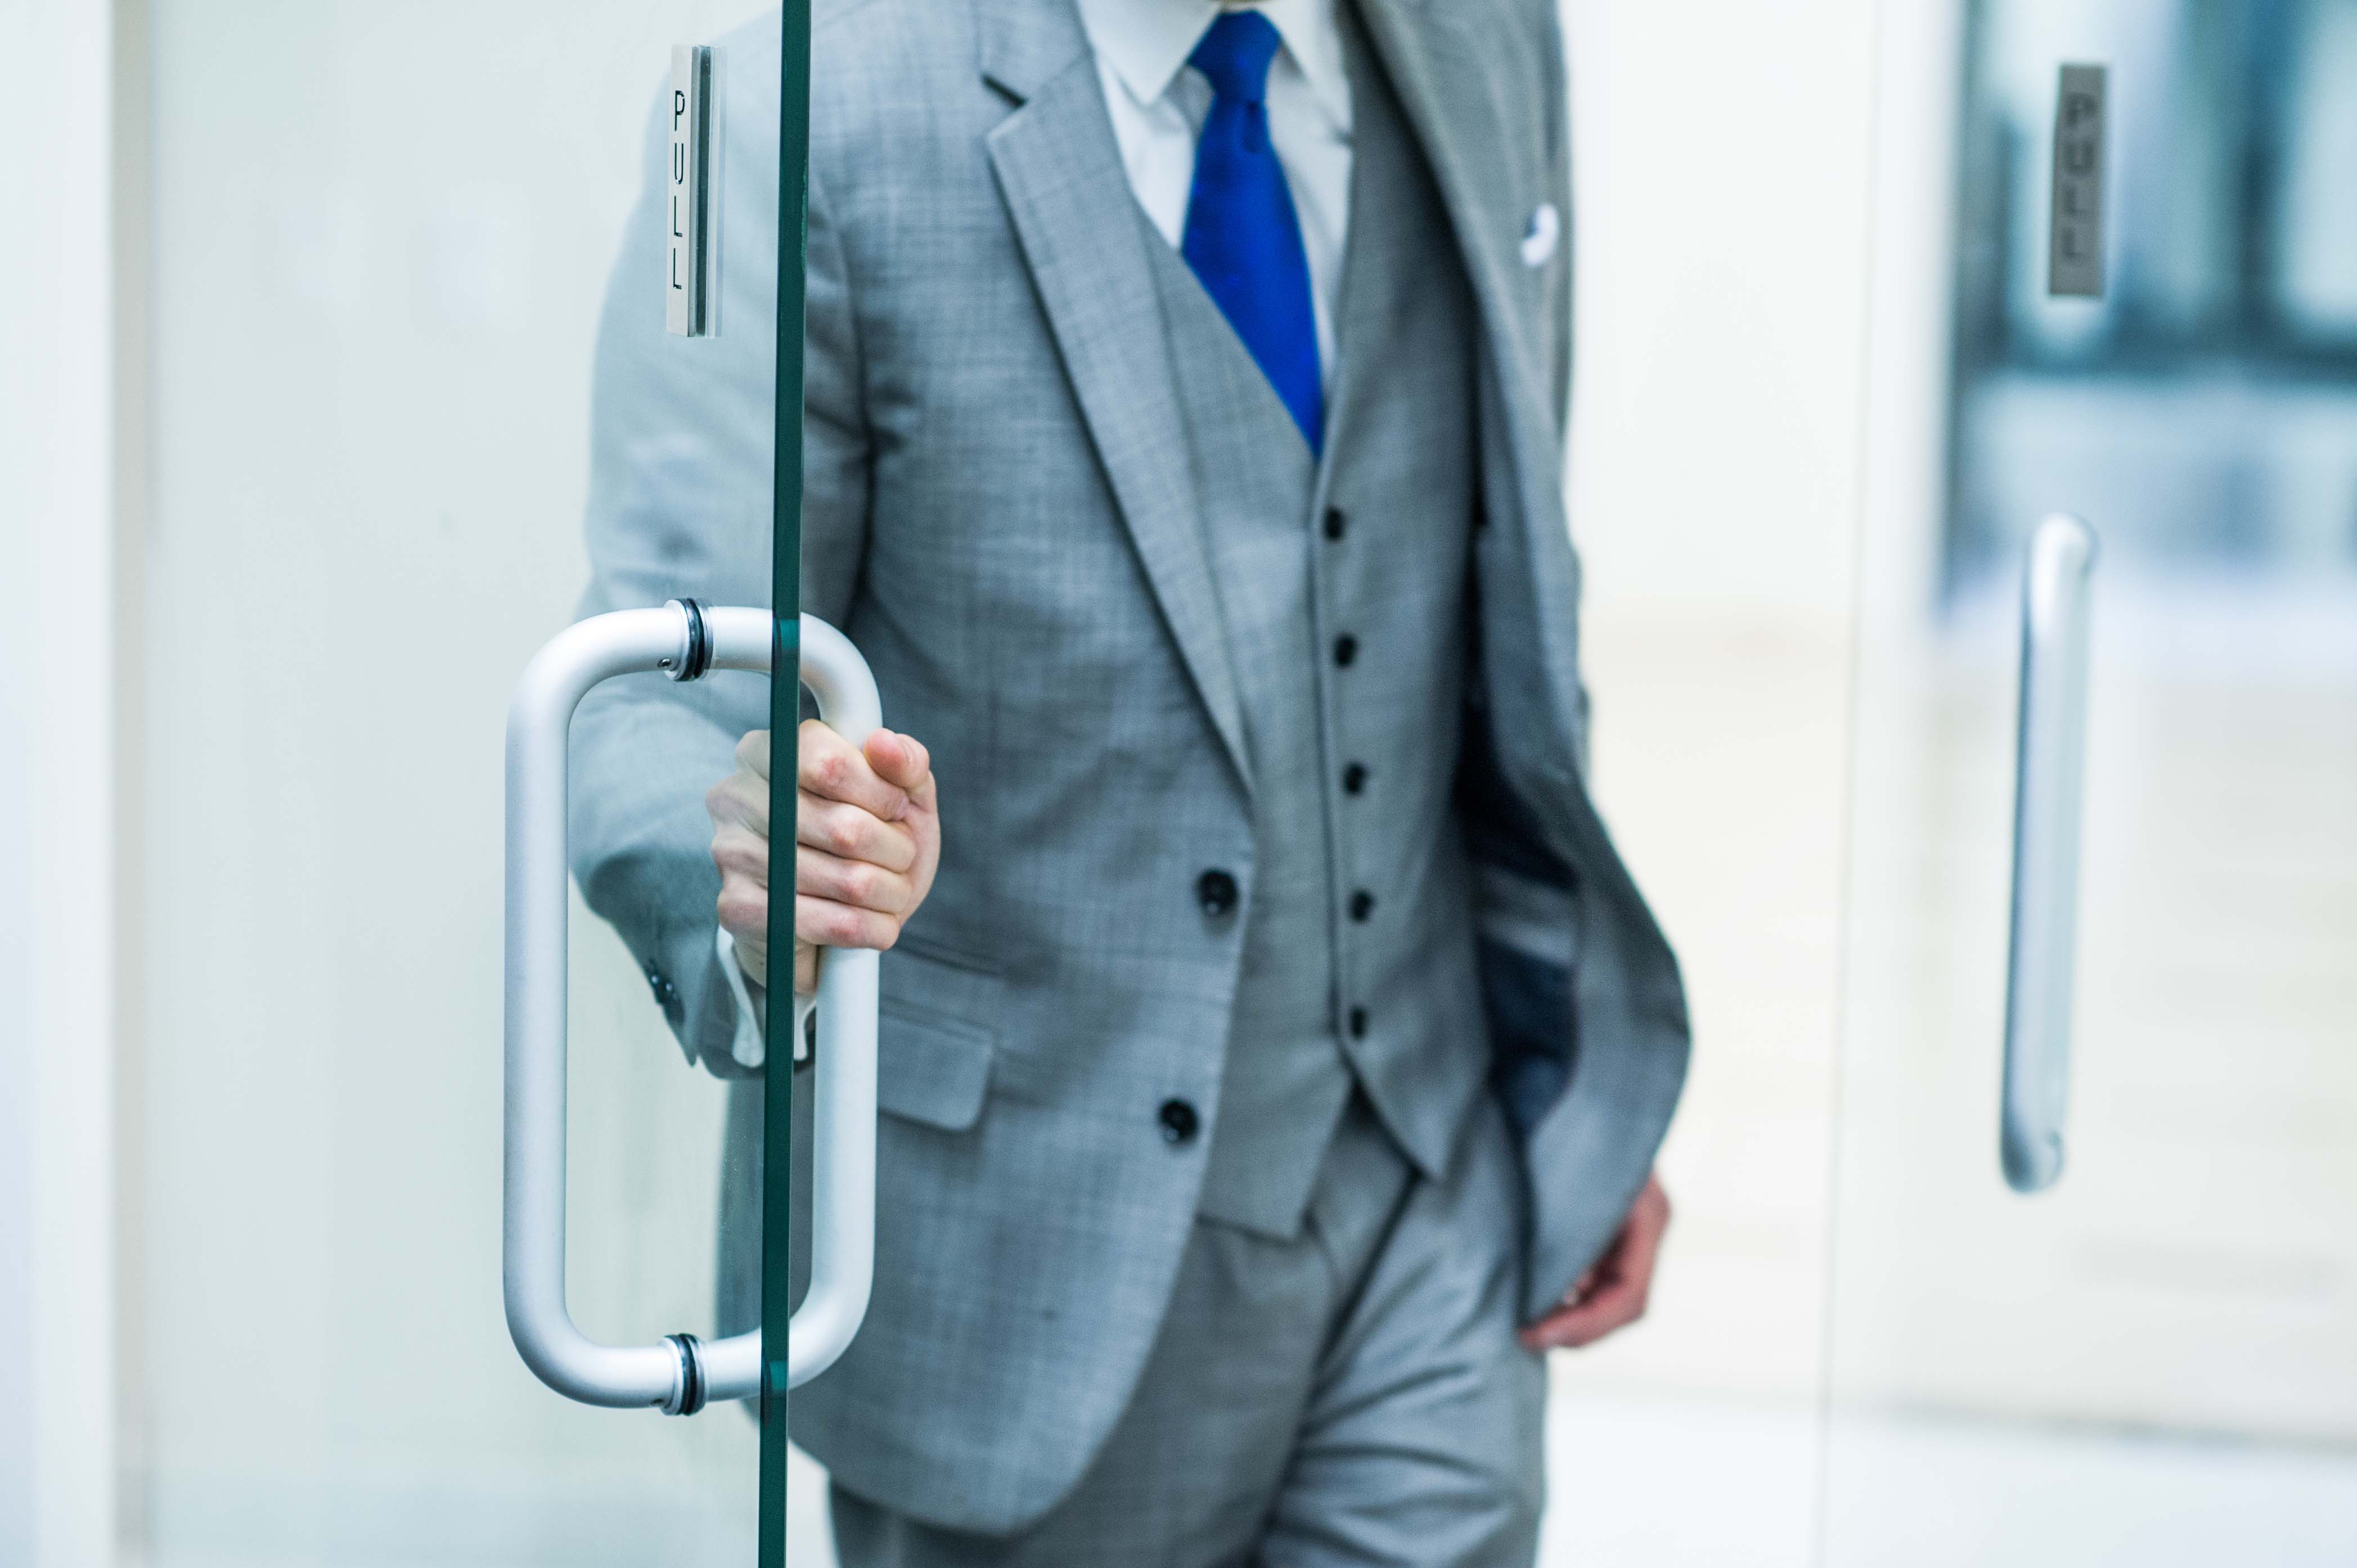 Swinging doors create risk for businesses